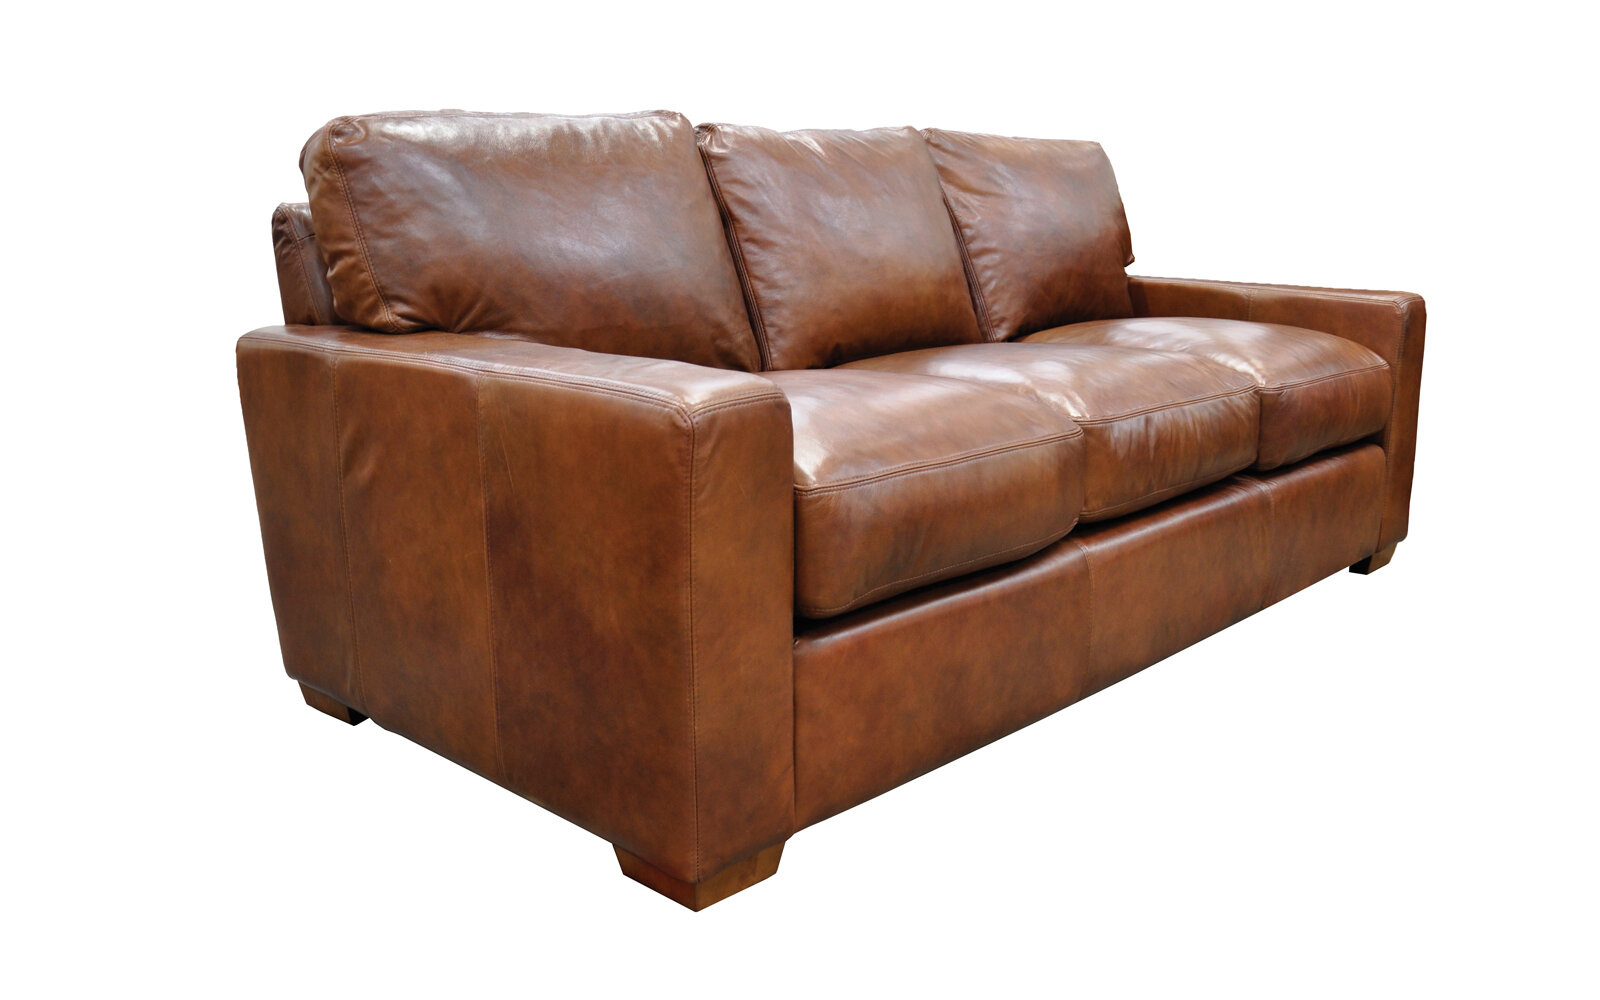 Attrayant Omnia Leather City Craft Leather Sofa U0026 Reviews | Wayfair